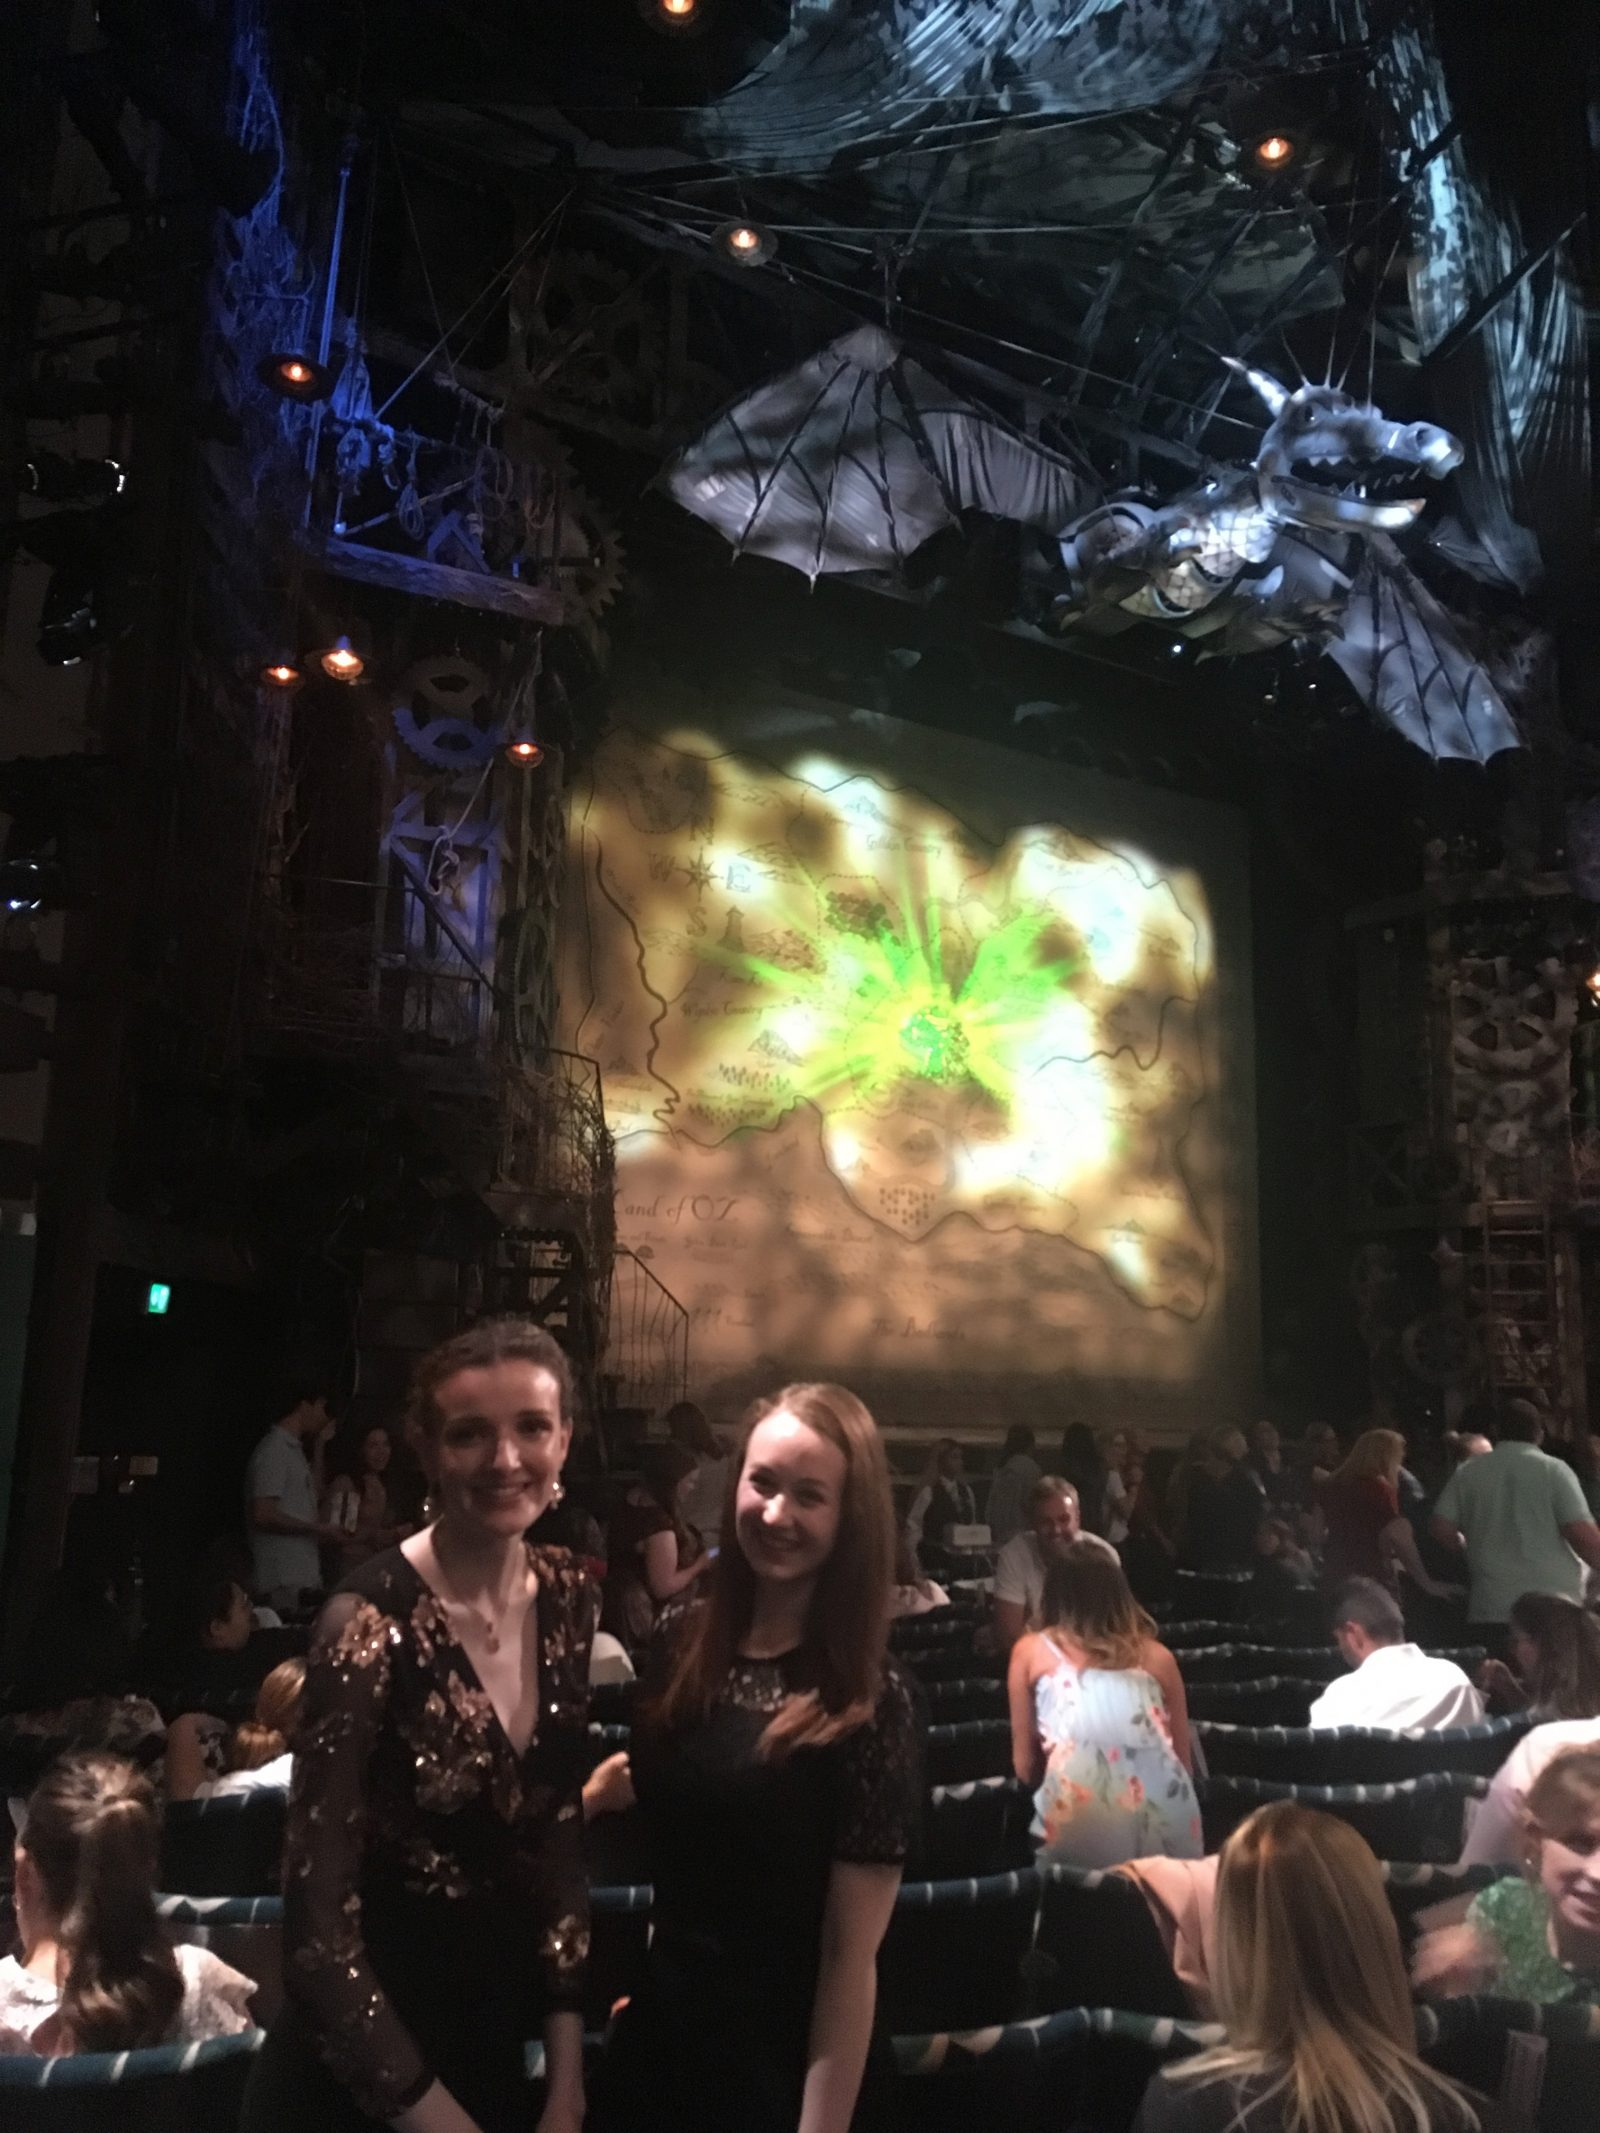 kate and pippa stood in stalls seats in theatre, with wicked stage in background